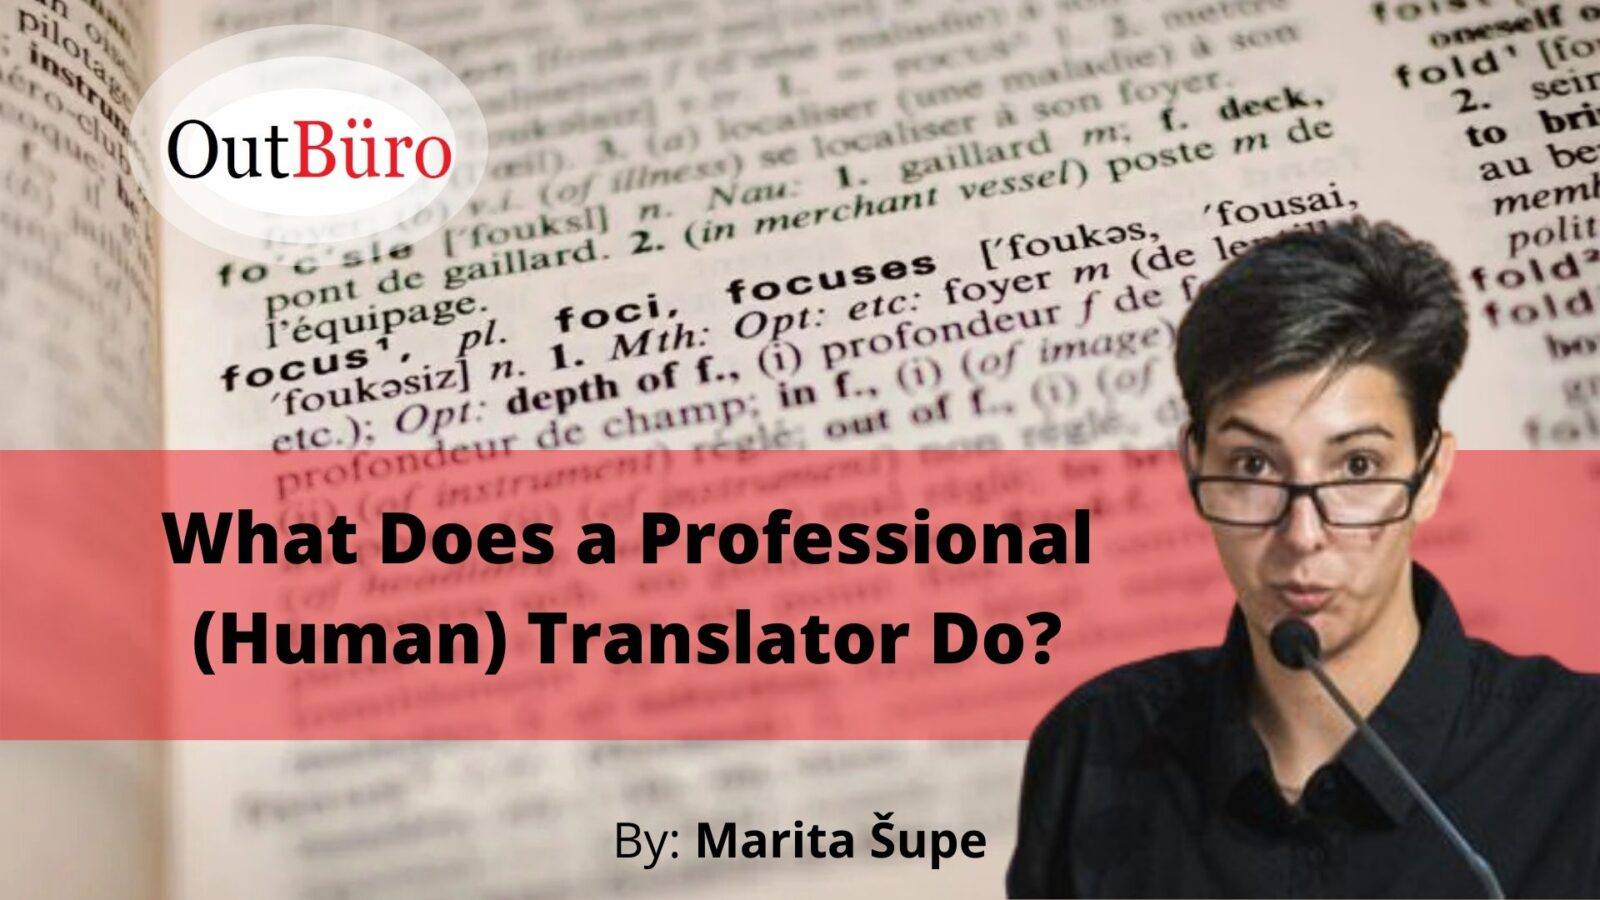 WHAT does a professional human translator do by Marita Supa lgbtq entrepreneurs lesbian business startup owner lgbt founders global networking community online OutBuro